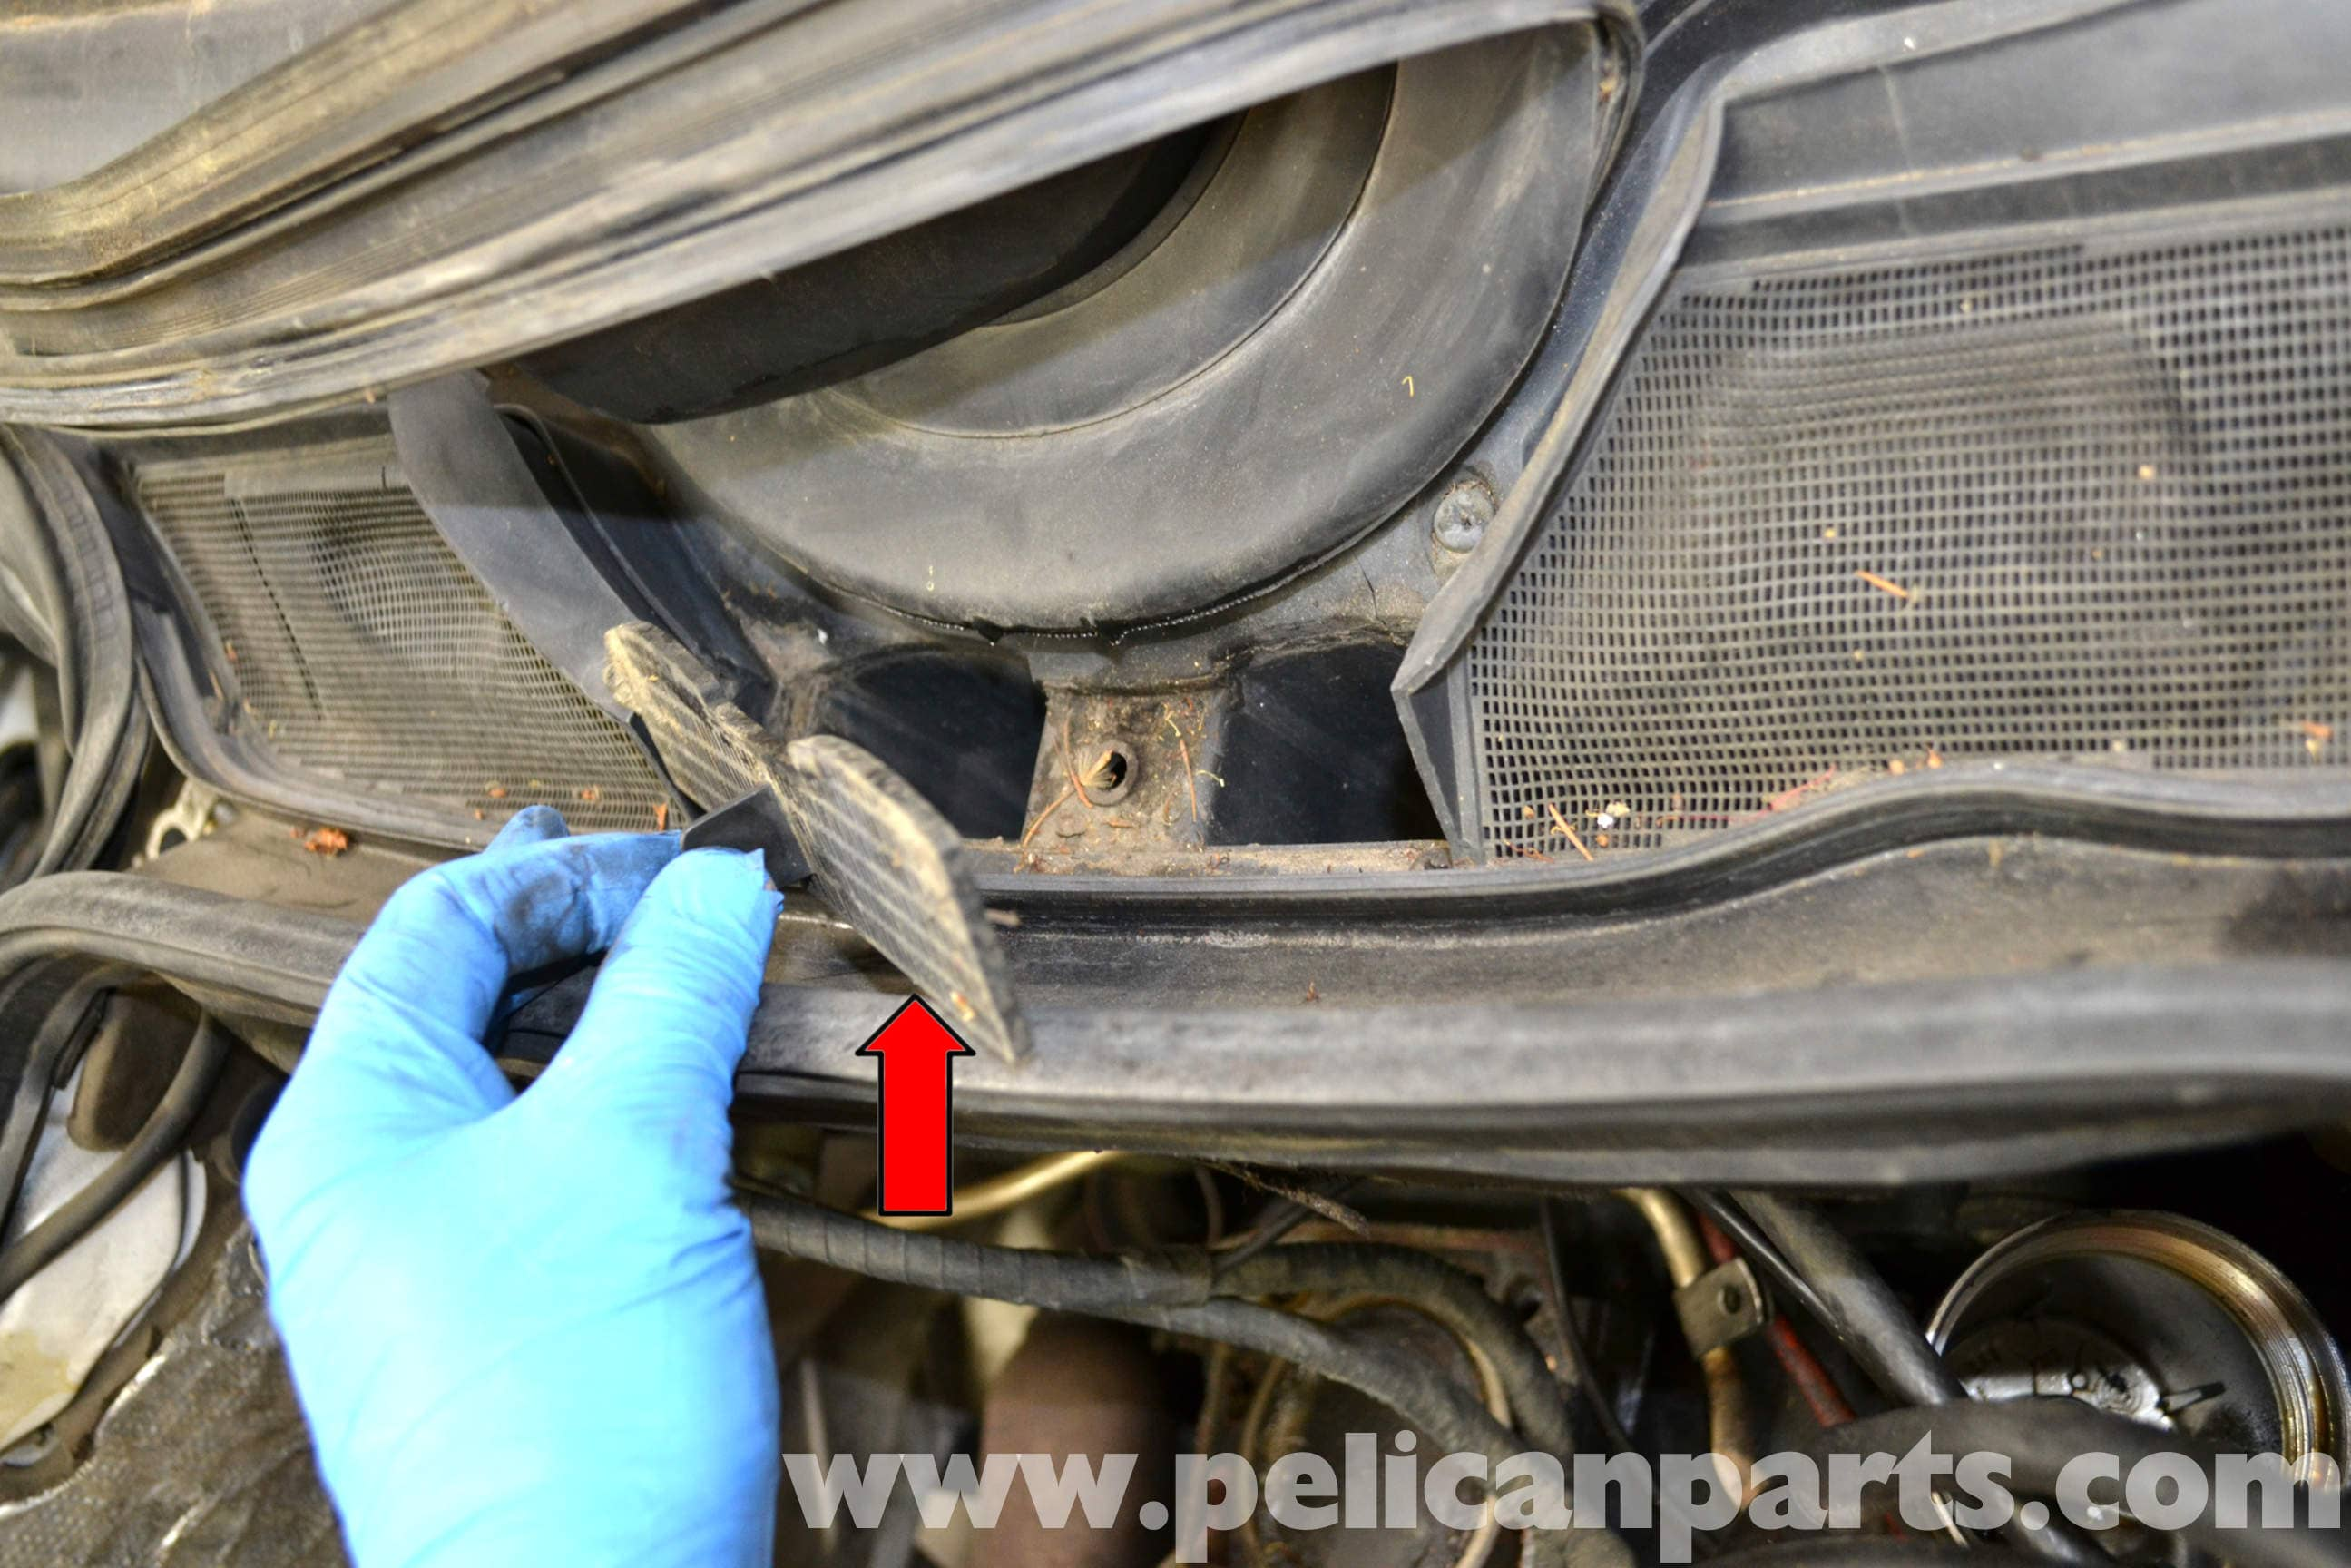 Mercedes Benz W124 Mono Post Wiper Repair And Replacement 1986